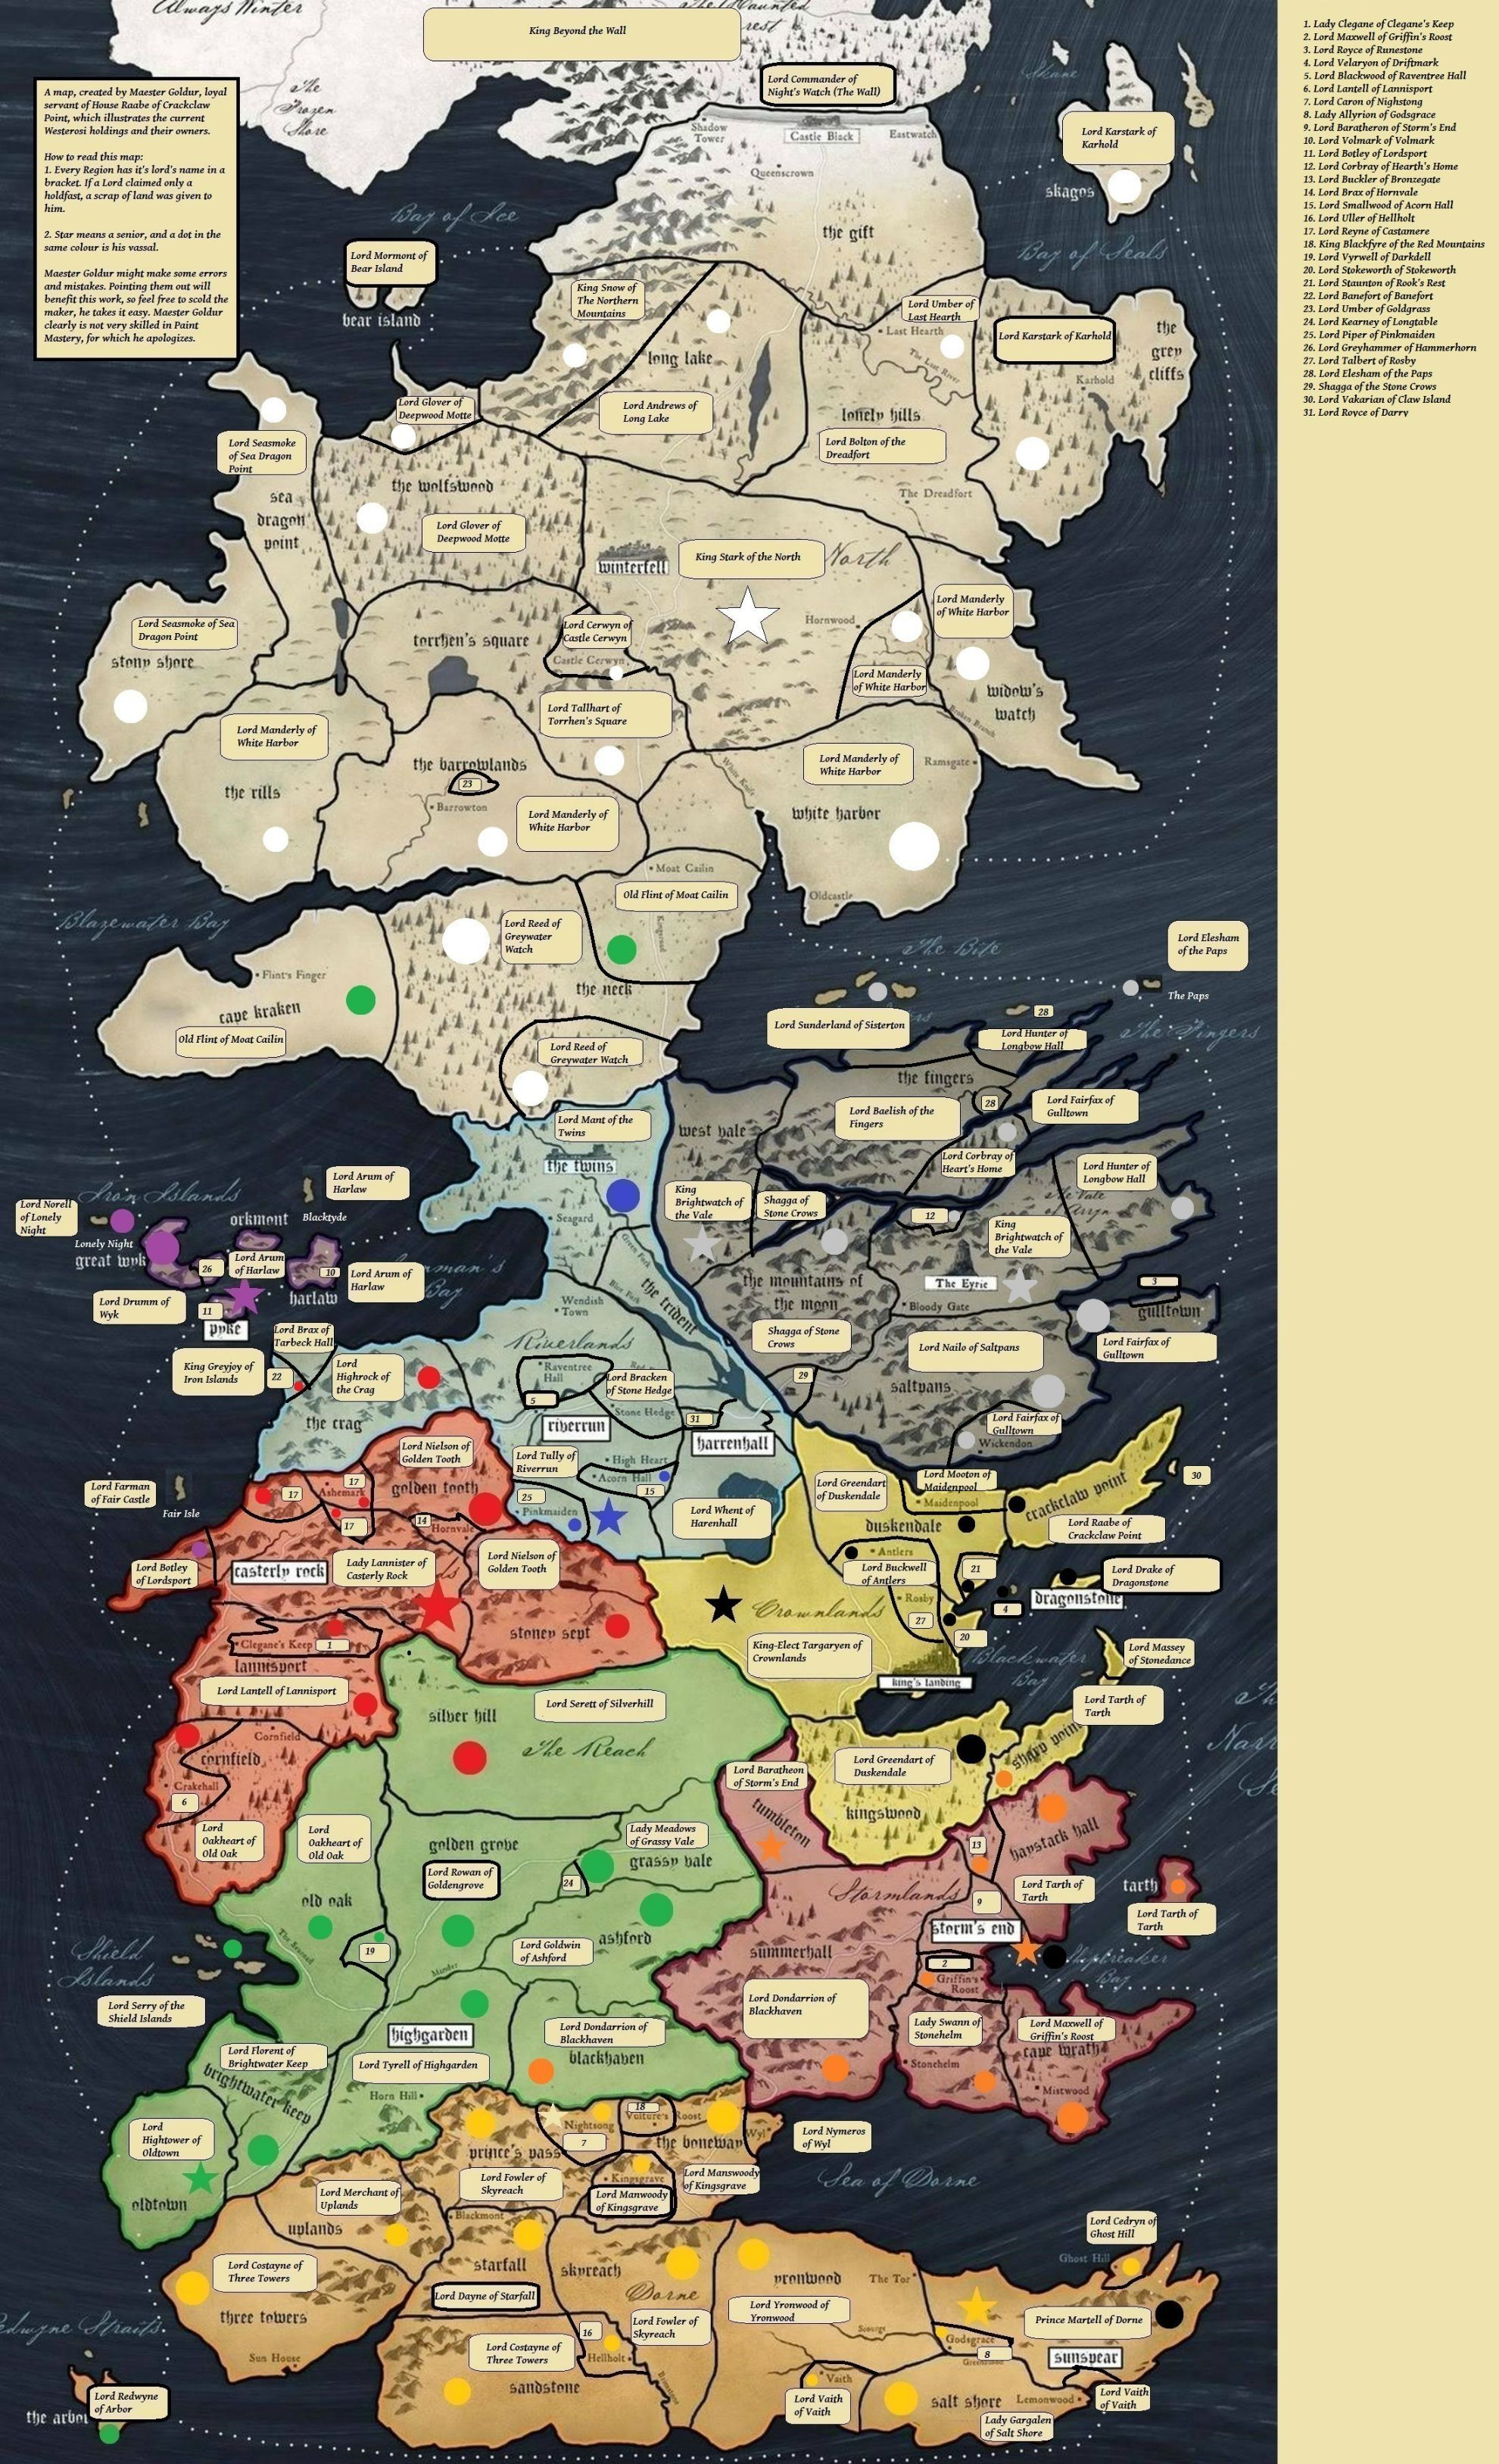 Map of Westeros   Talk Nerdy To Me   Pinterest   The ...  Map of Westeros...